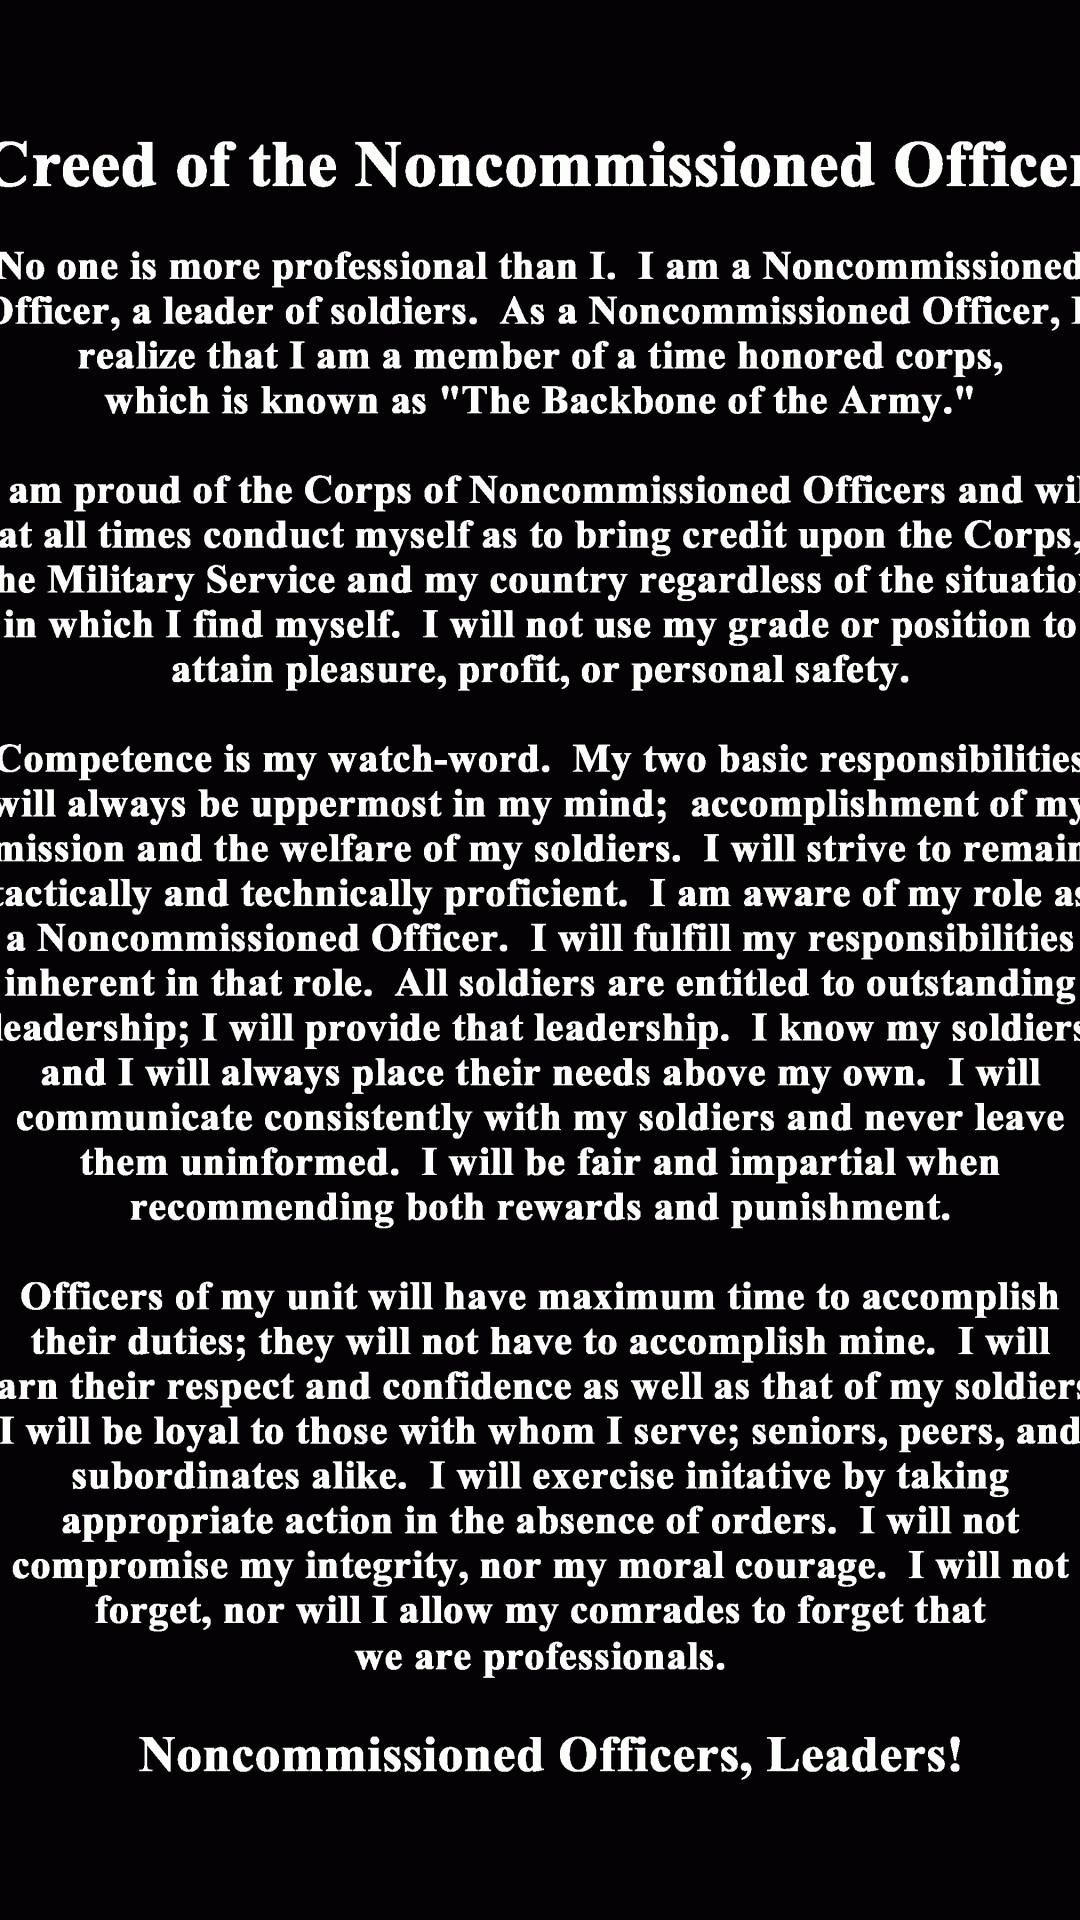 1080x1920 us army nco creed wallpaper